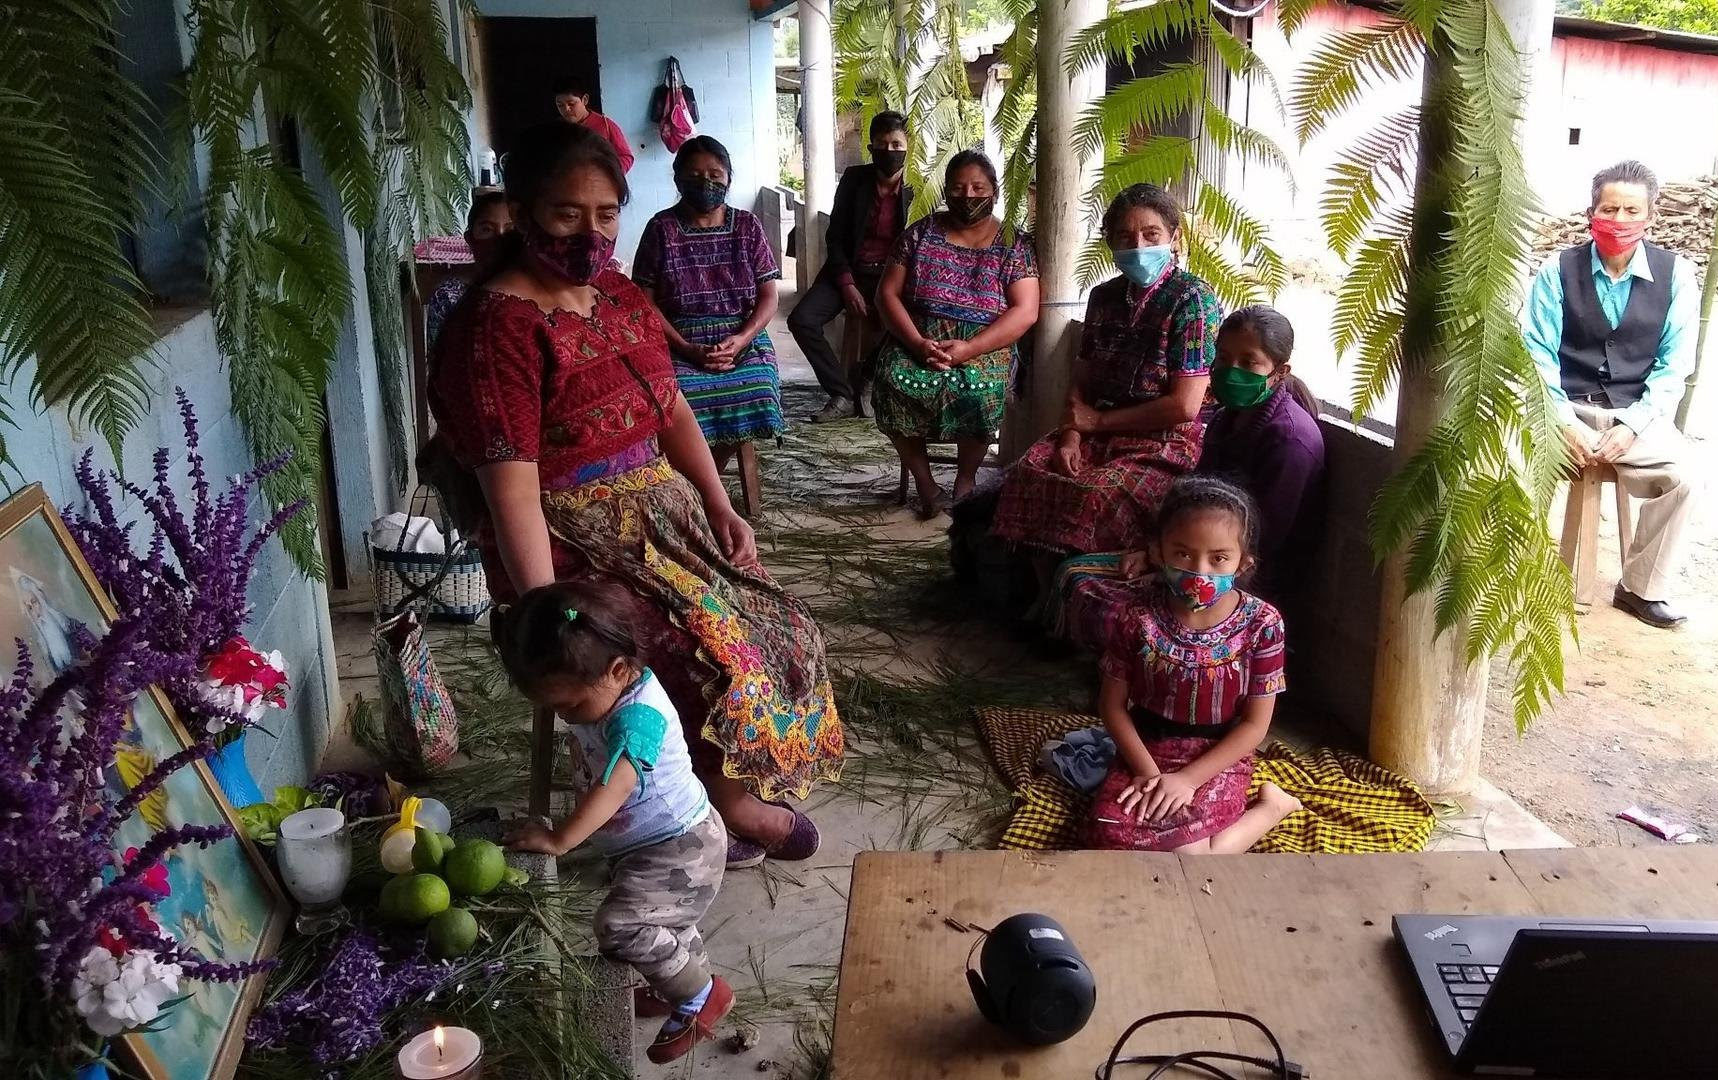 In the front of a house, 9 people, mostly women, all using facial masks are sitting in the distance while they watch the livestream of the assembly on a laptop. There is a small altar on the left side, where a child plays.